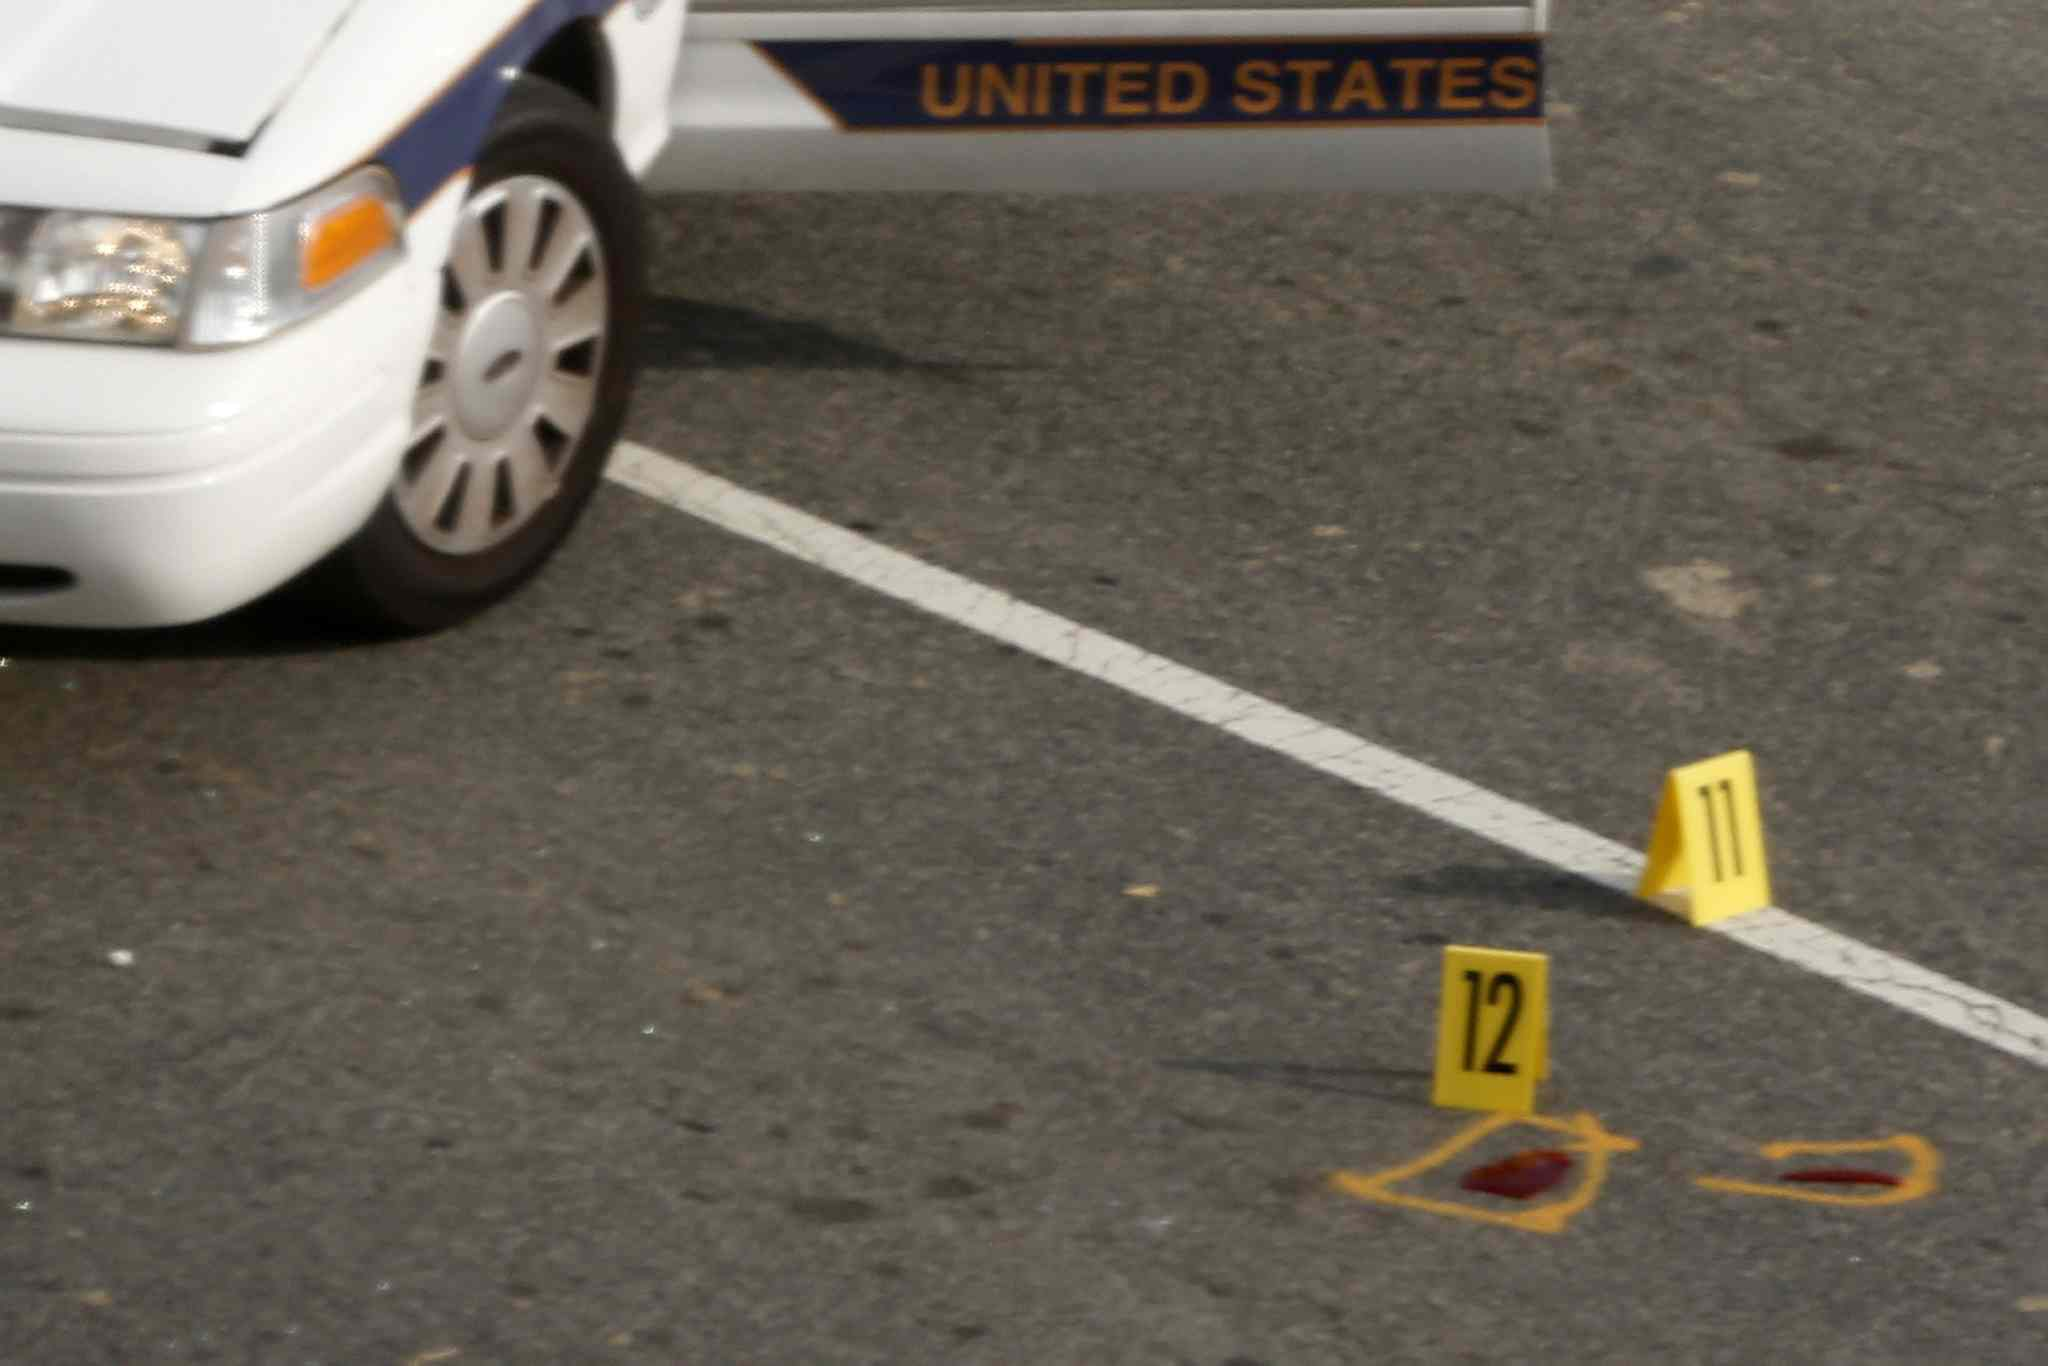 Evidence markers are placed near a Capitol police car.